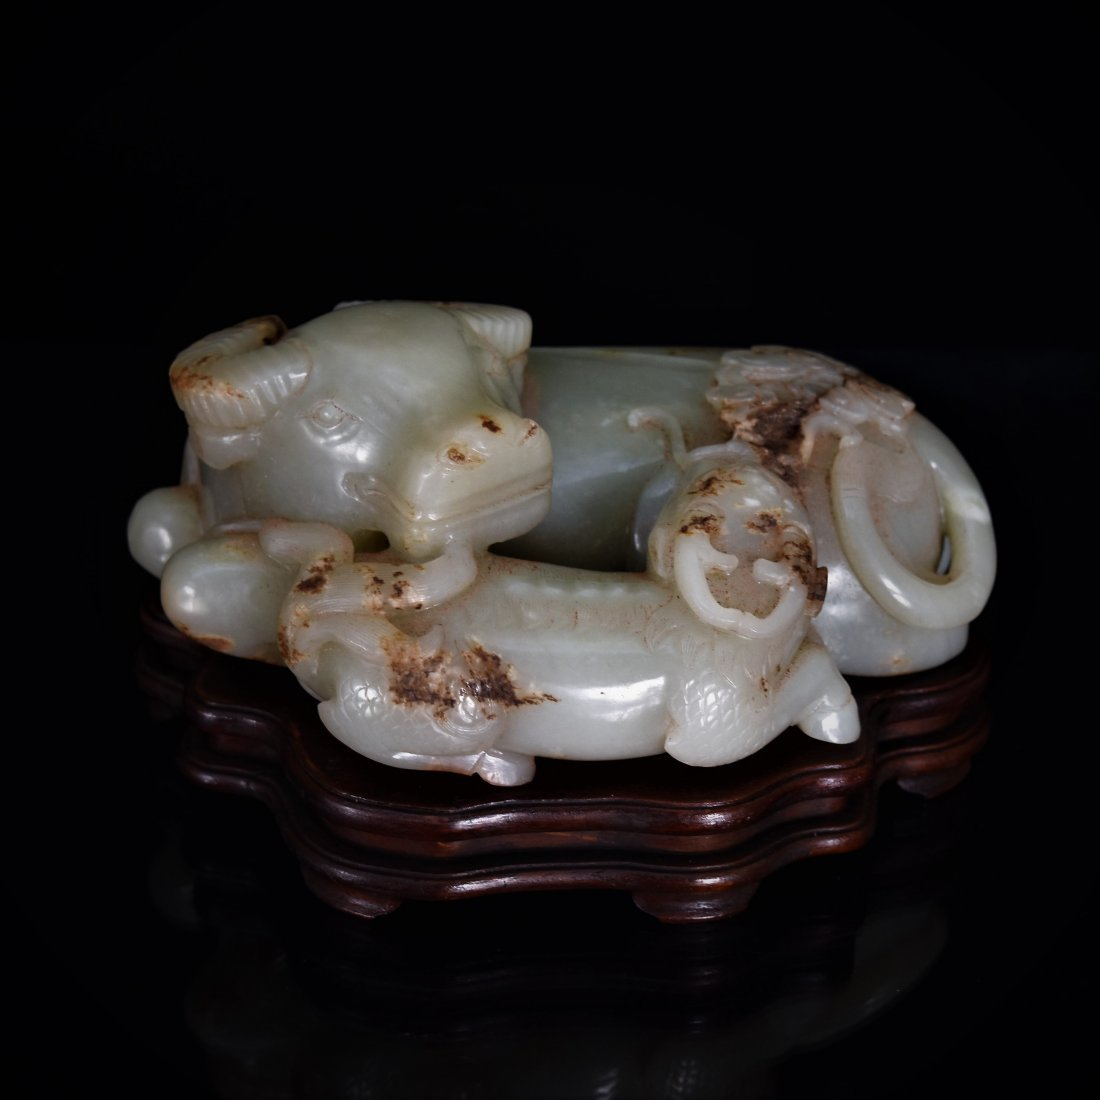 18TH C WATER BUFFALO & QILING JADE SCULPTURE ON STAND